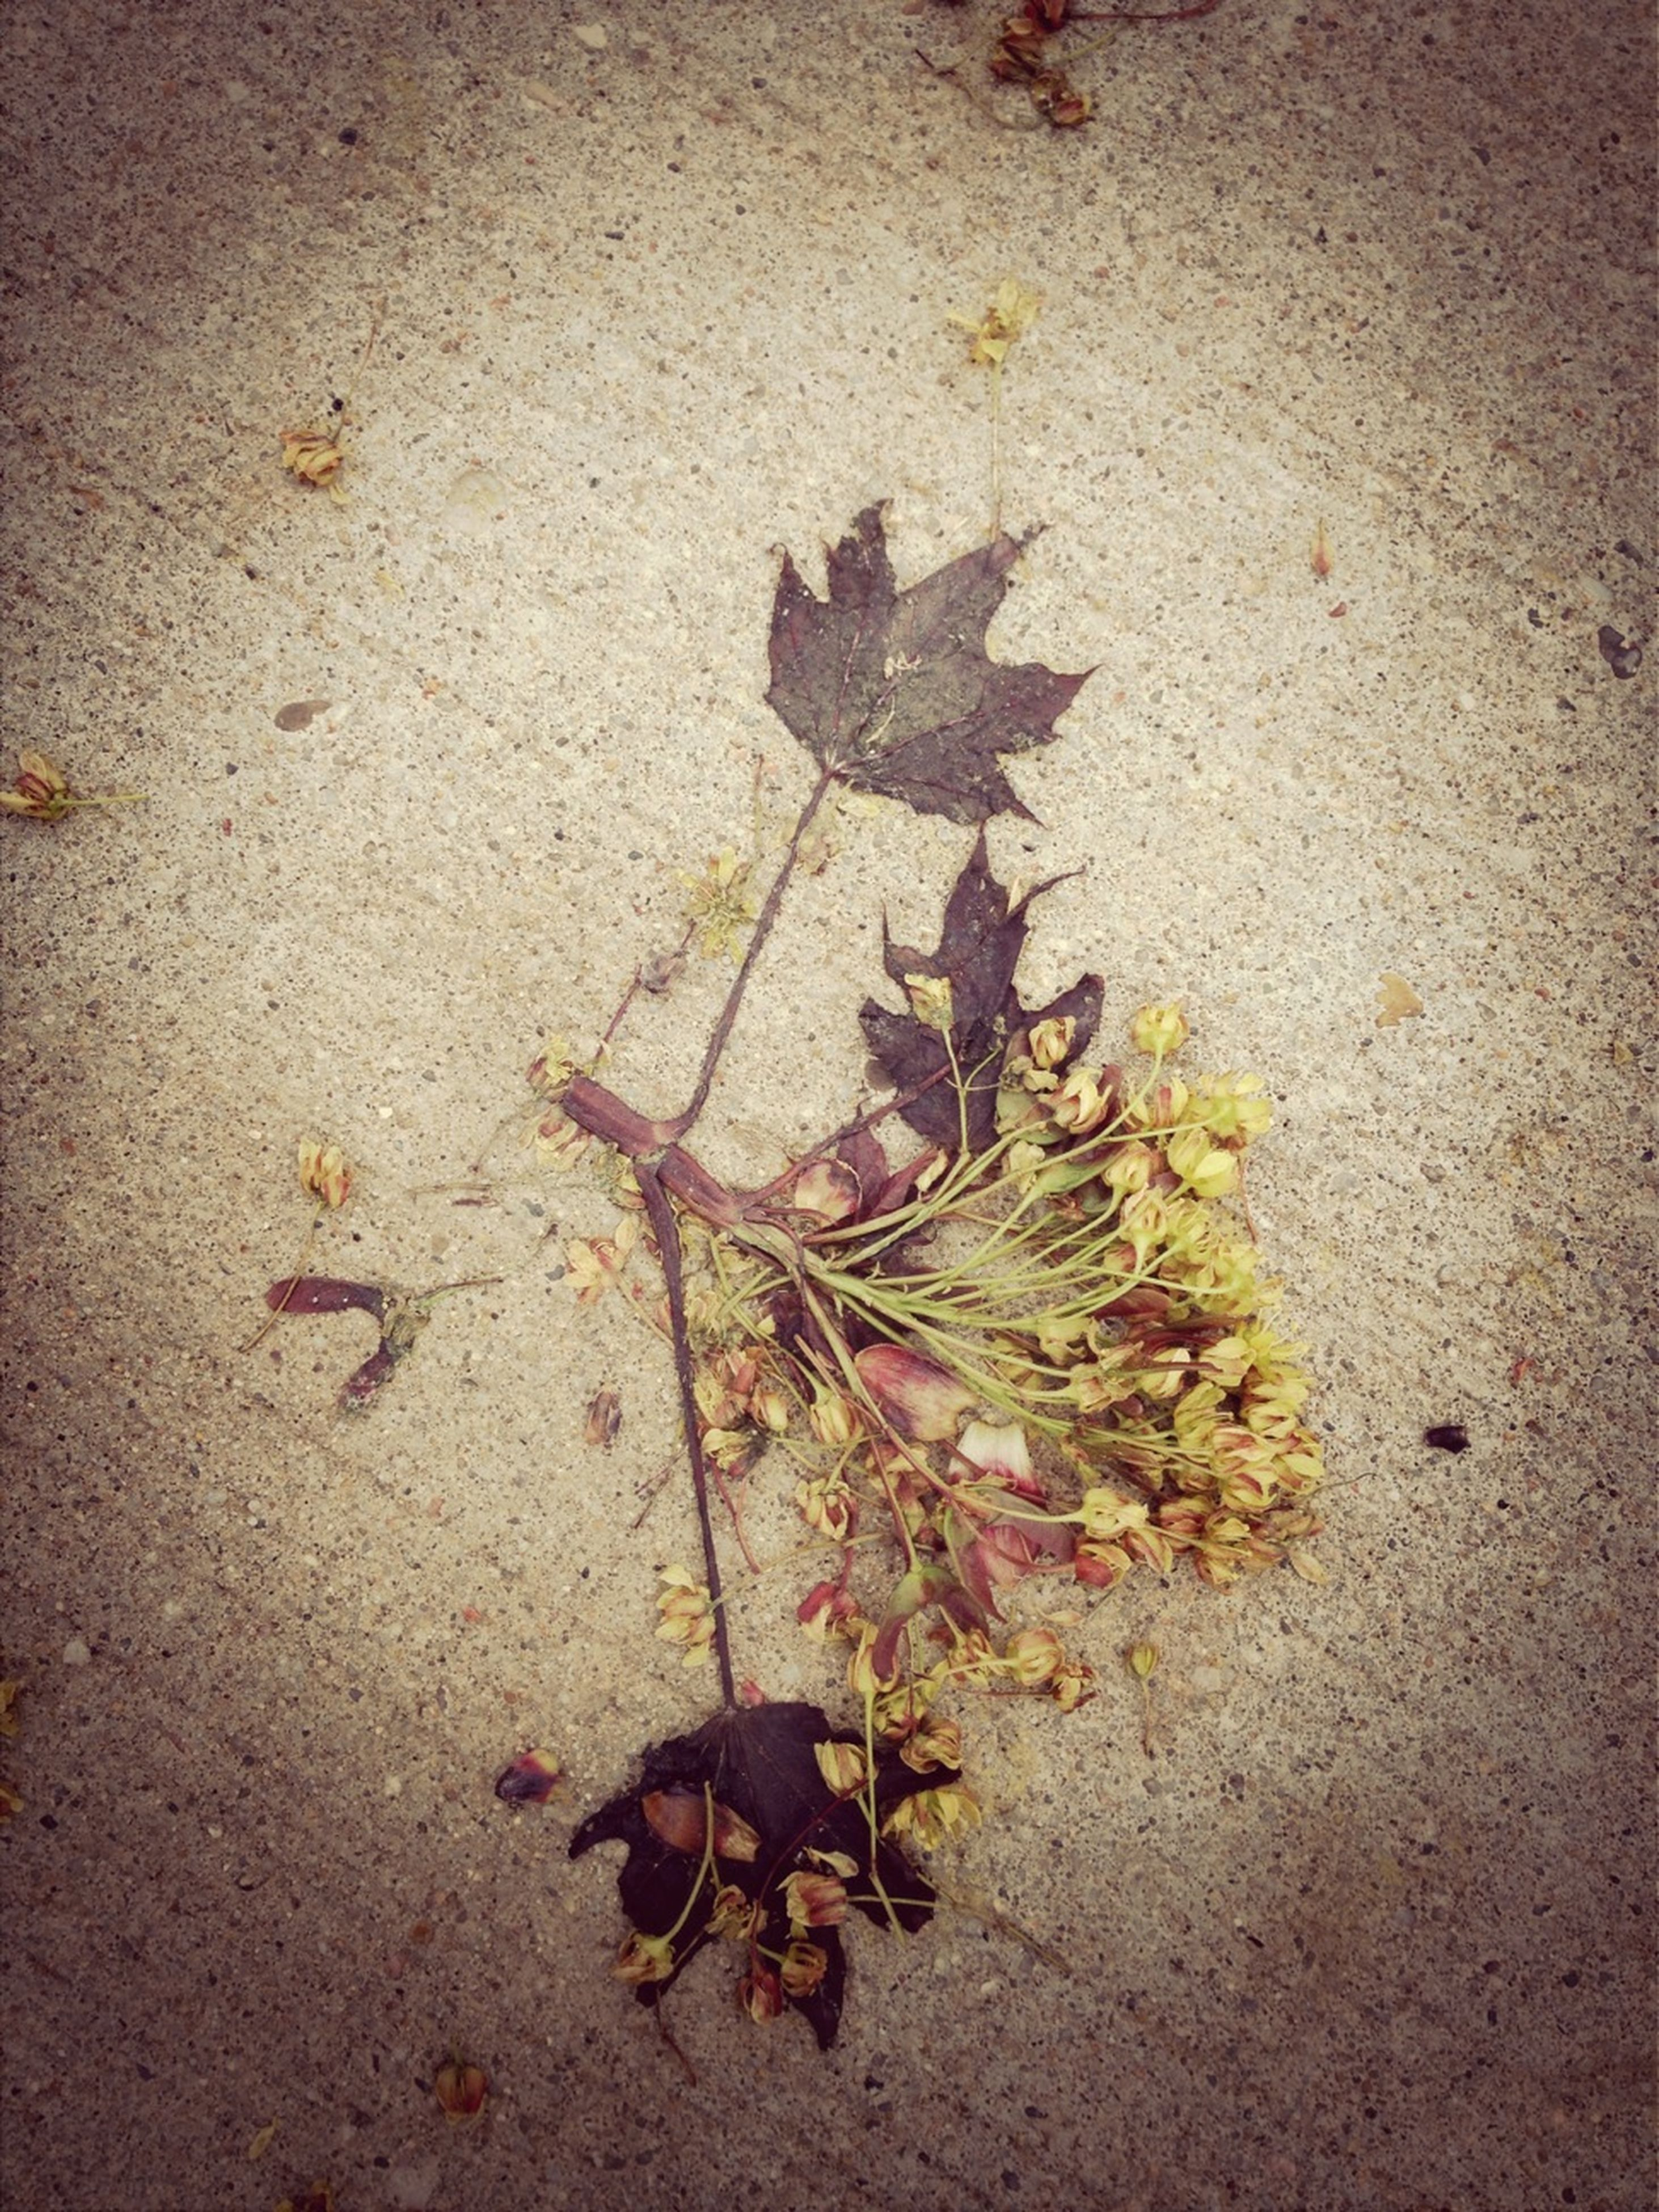 high angle view, leaf, dry, still life, ground, street, day, fallen, outdoors, death, no people, close-up, shadow, nature, dirt, sunlight, autumn, the end, shoe, messy